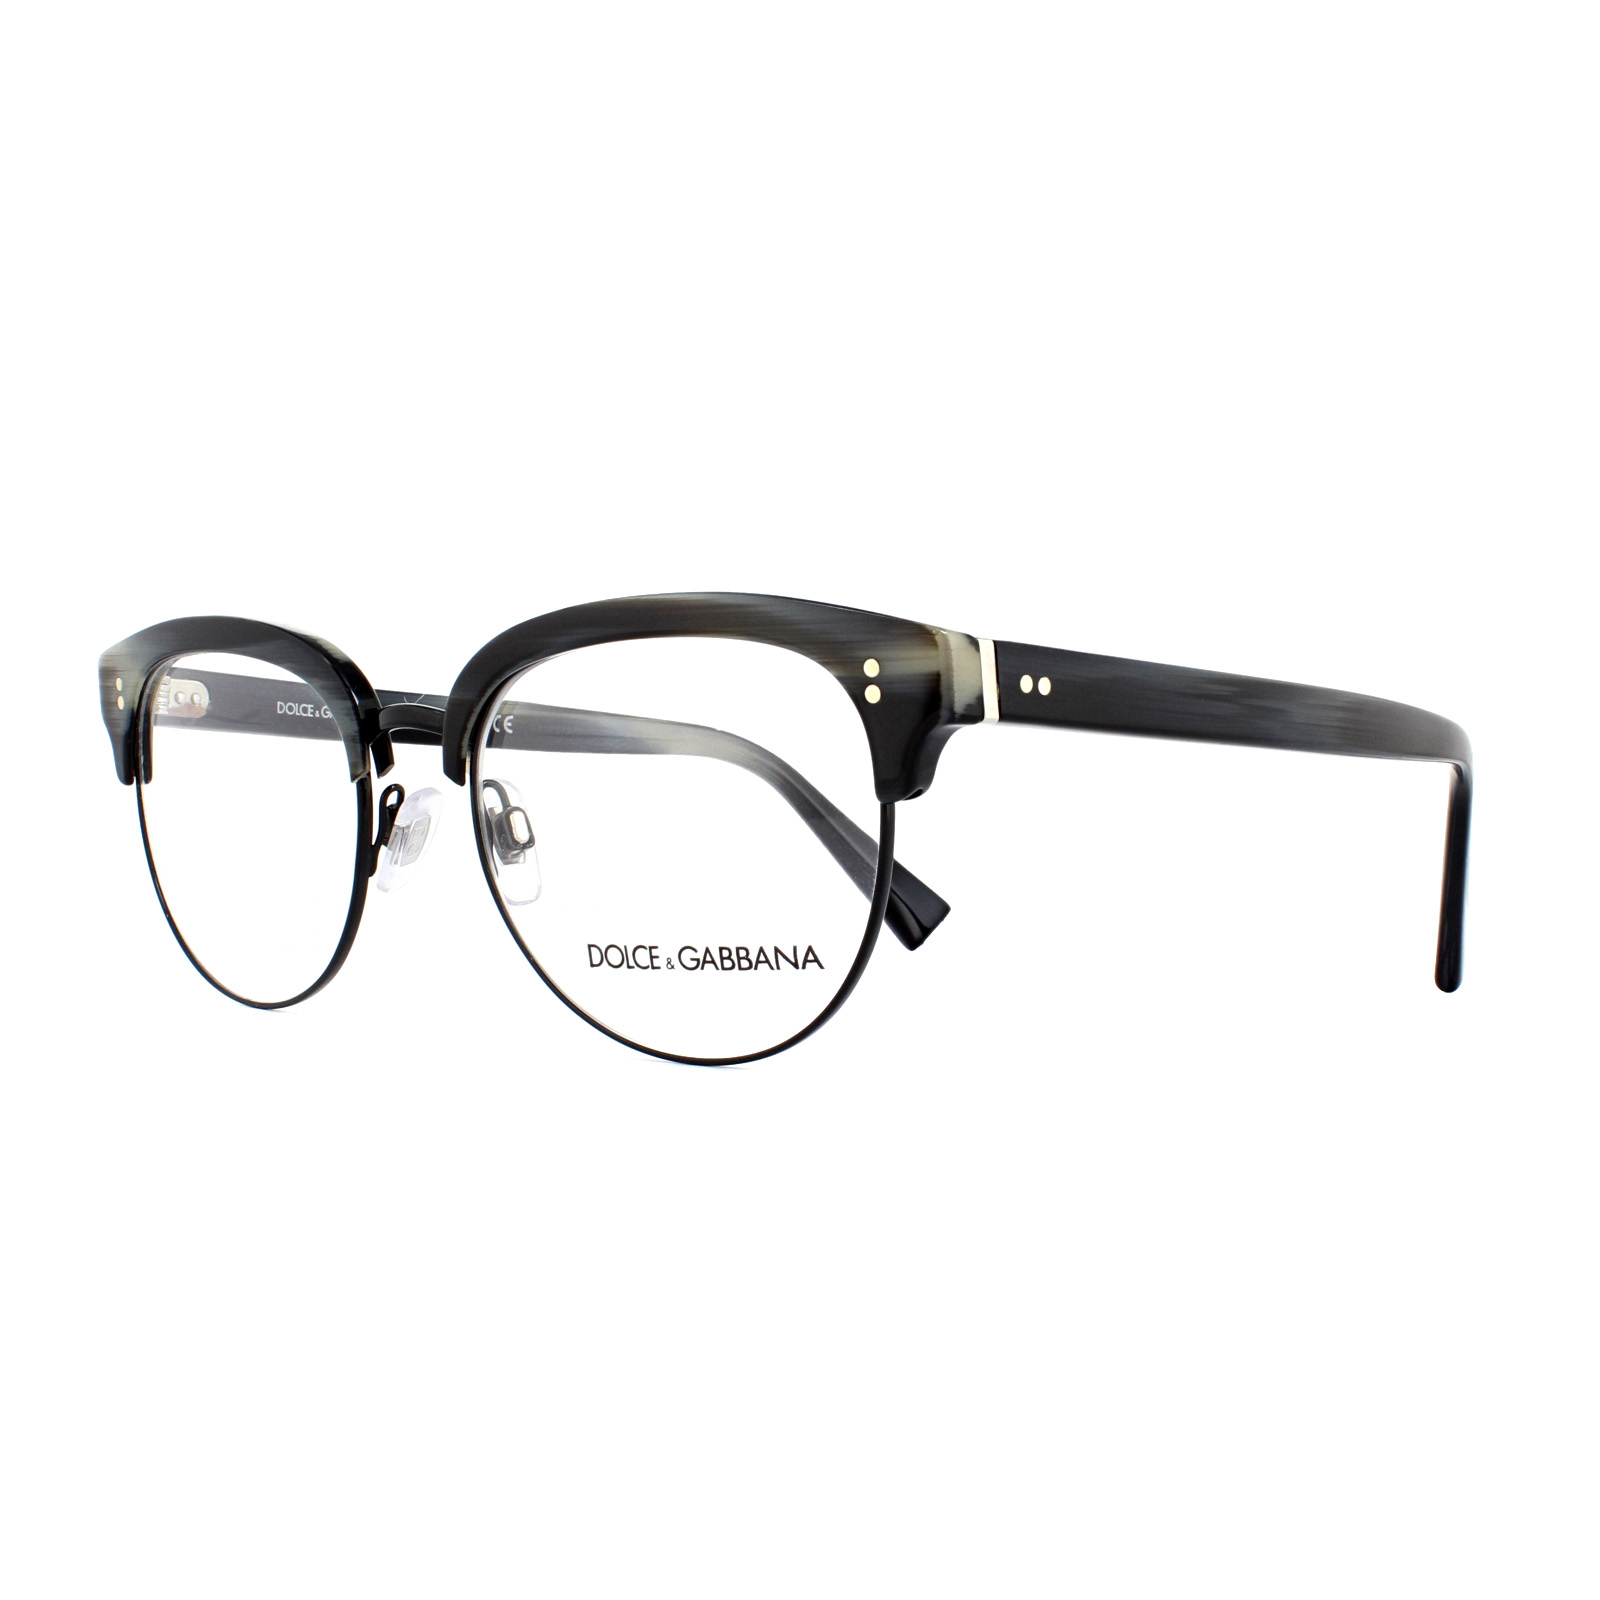 2038269156 Sentinel Dolce   Gabbana Glasses Frames DG 3270 3117 Striped Blue Black 52mm  Mens